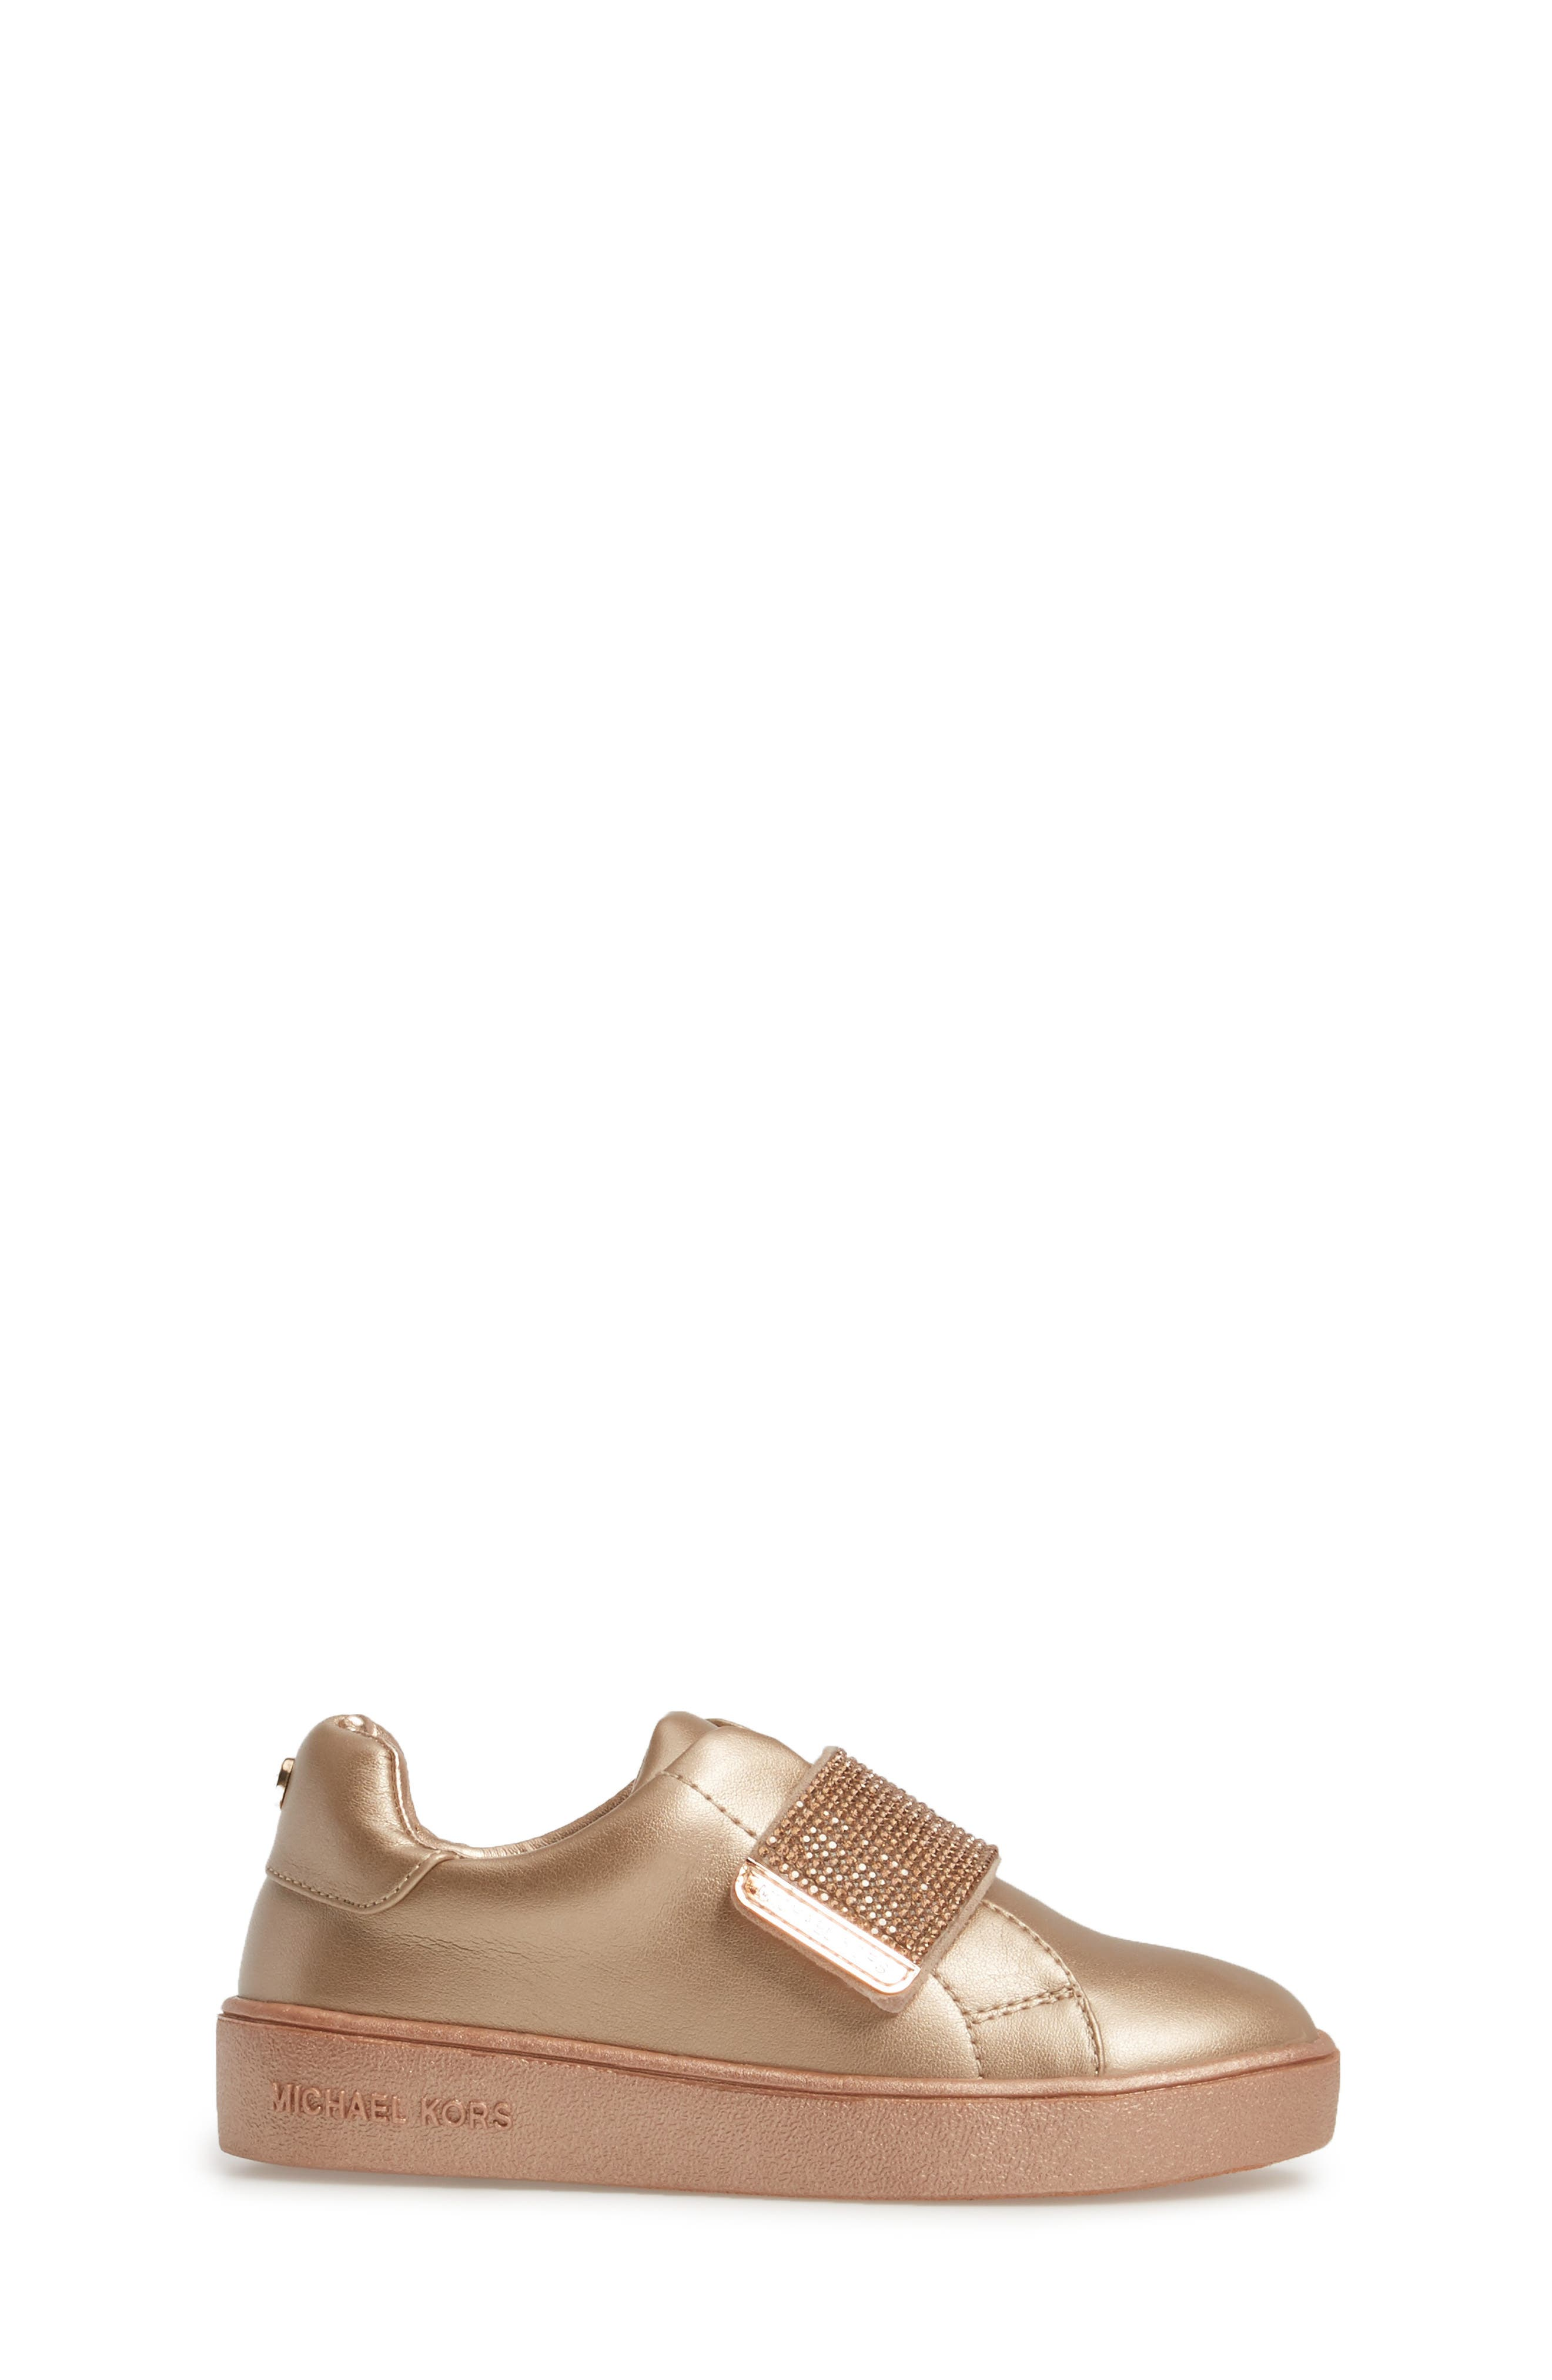 Ivy Candy Sneaker,                             Alternate thumbnail 8, color,